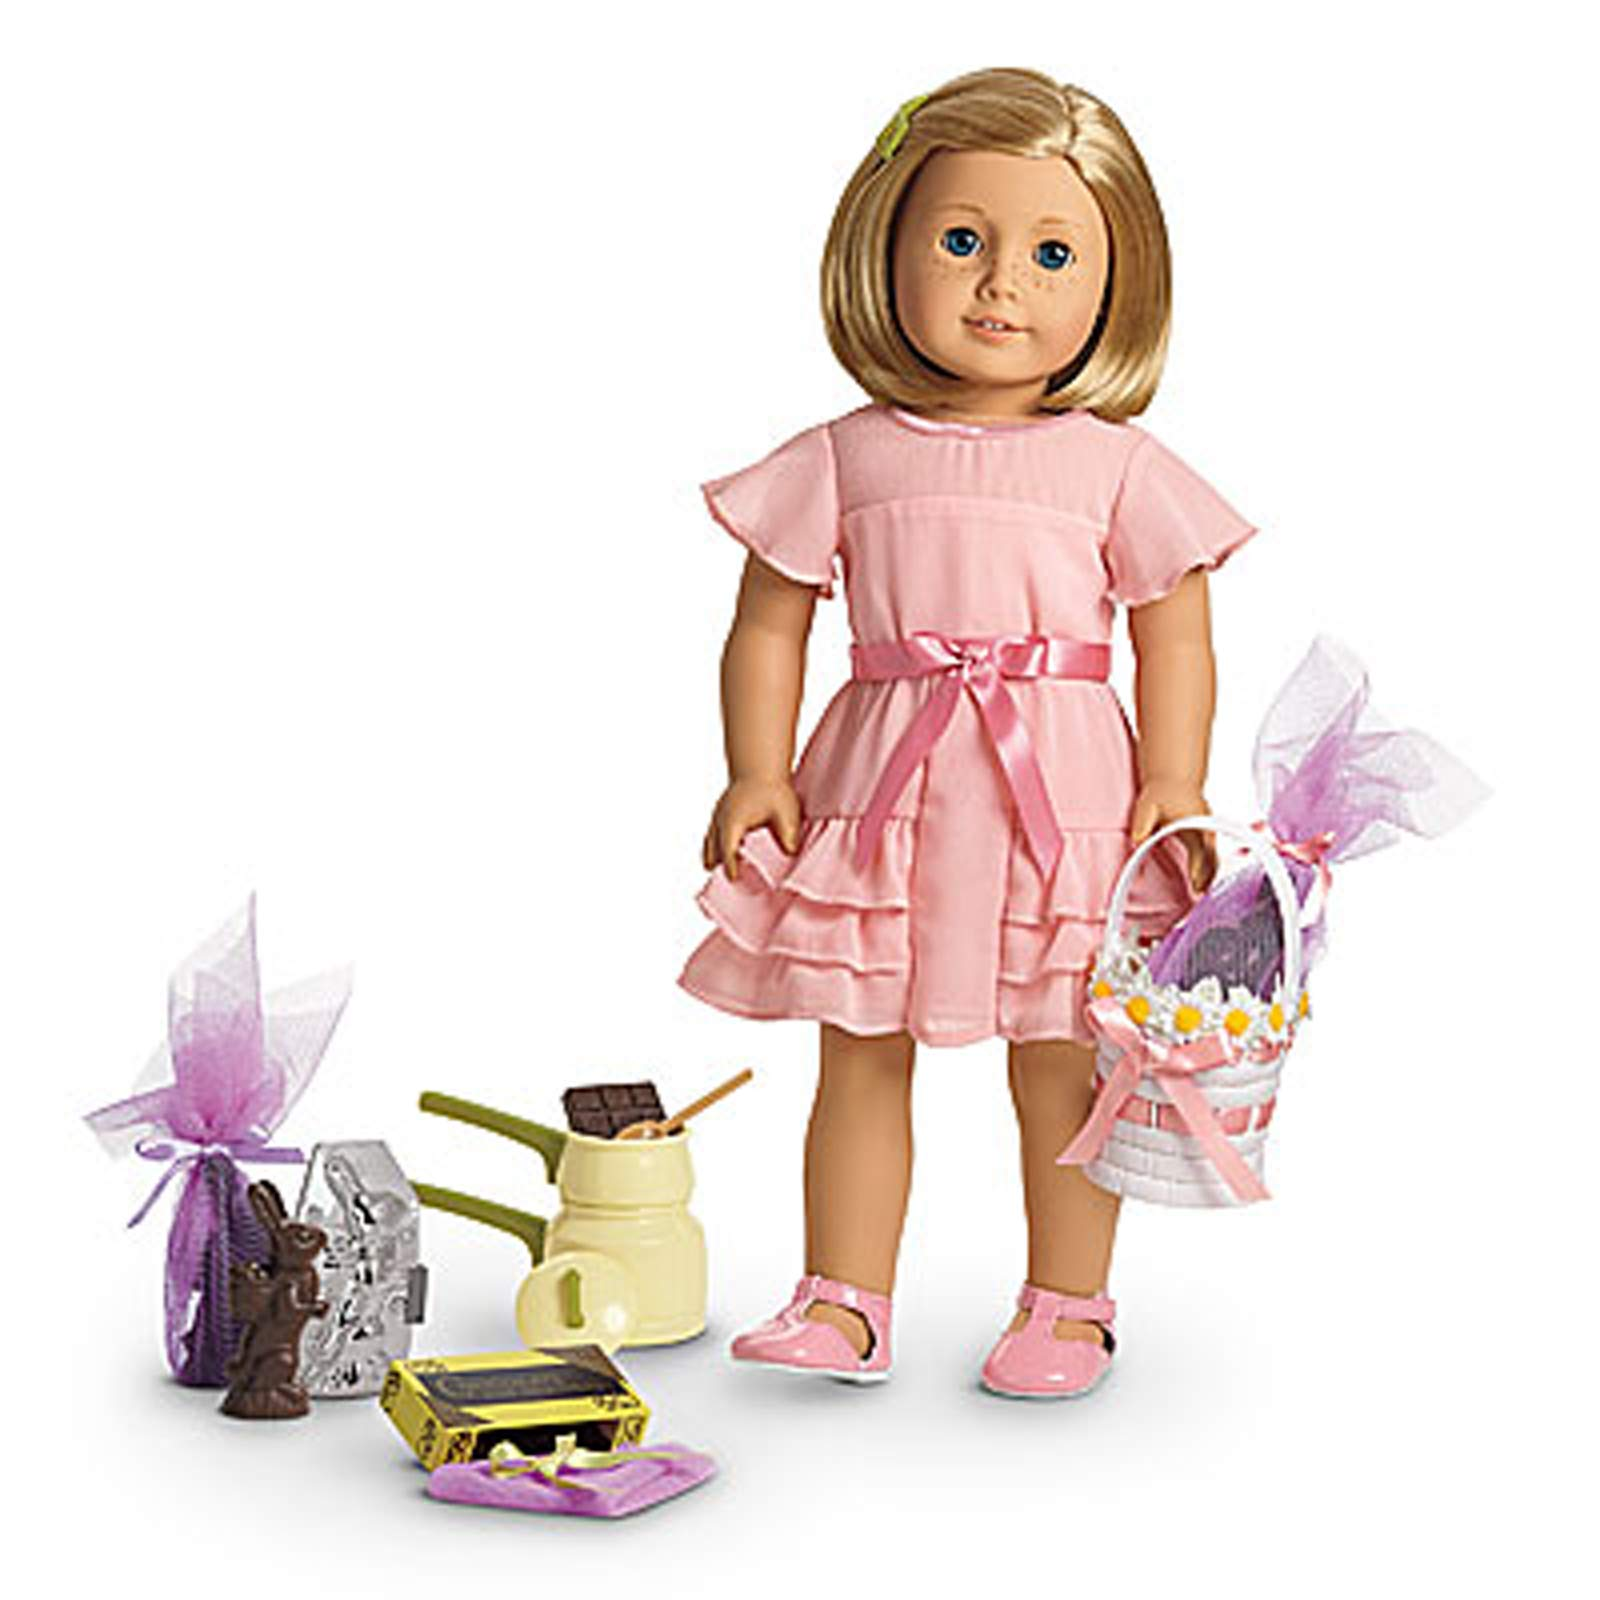 American Girl Limited Edition Kit's Easter Outfit and Candy Making Set